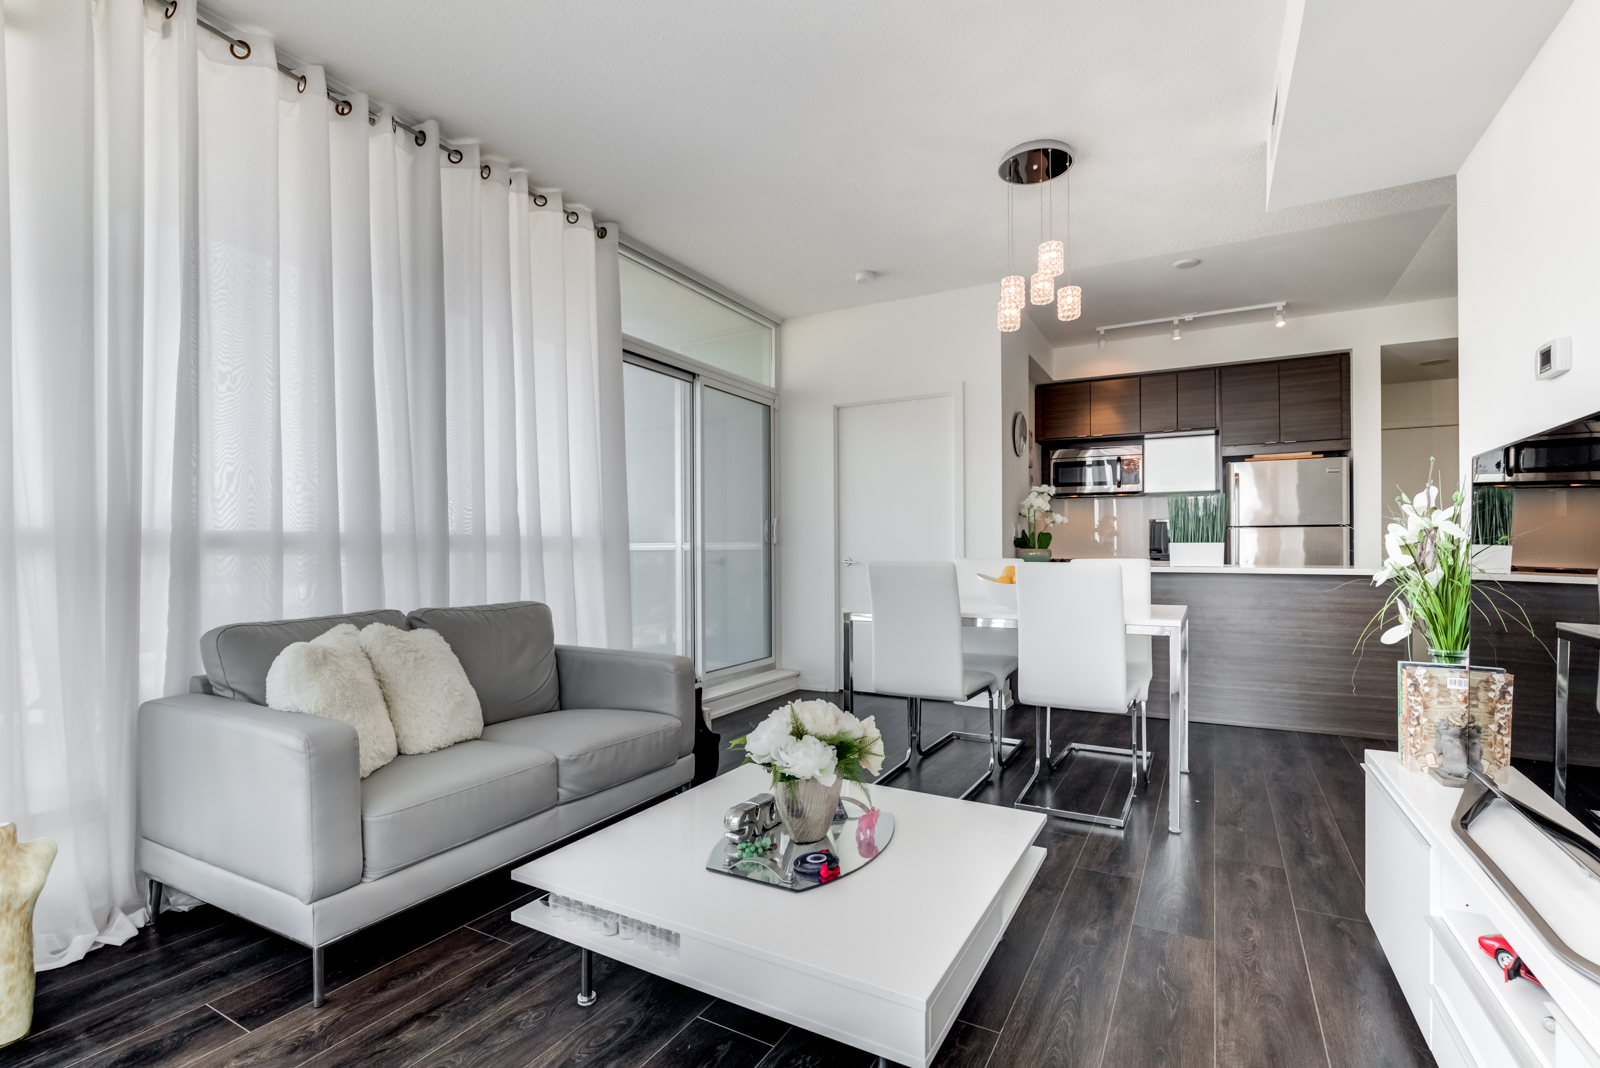 White and gray curtains, walls, furniture and dark floors at 62 Forest Manor Rd Unit 1803, Toronto.